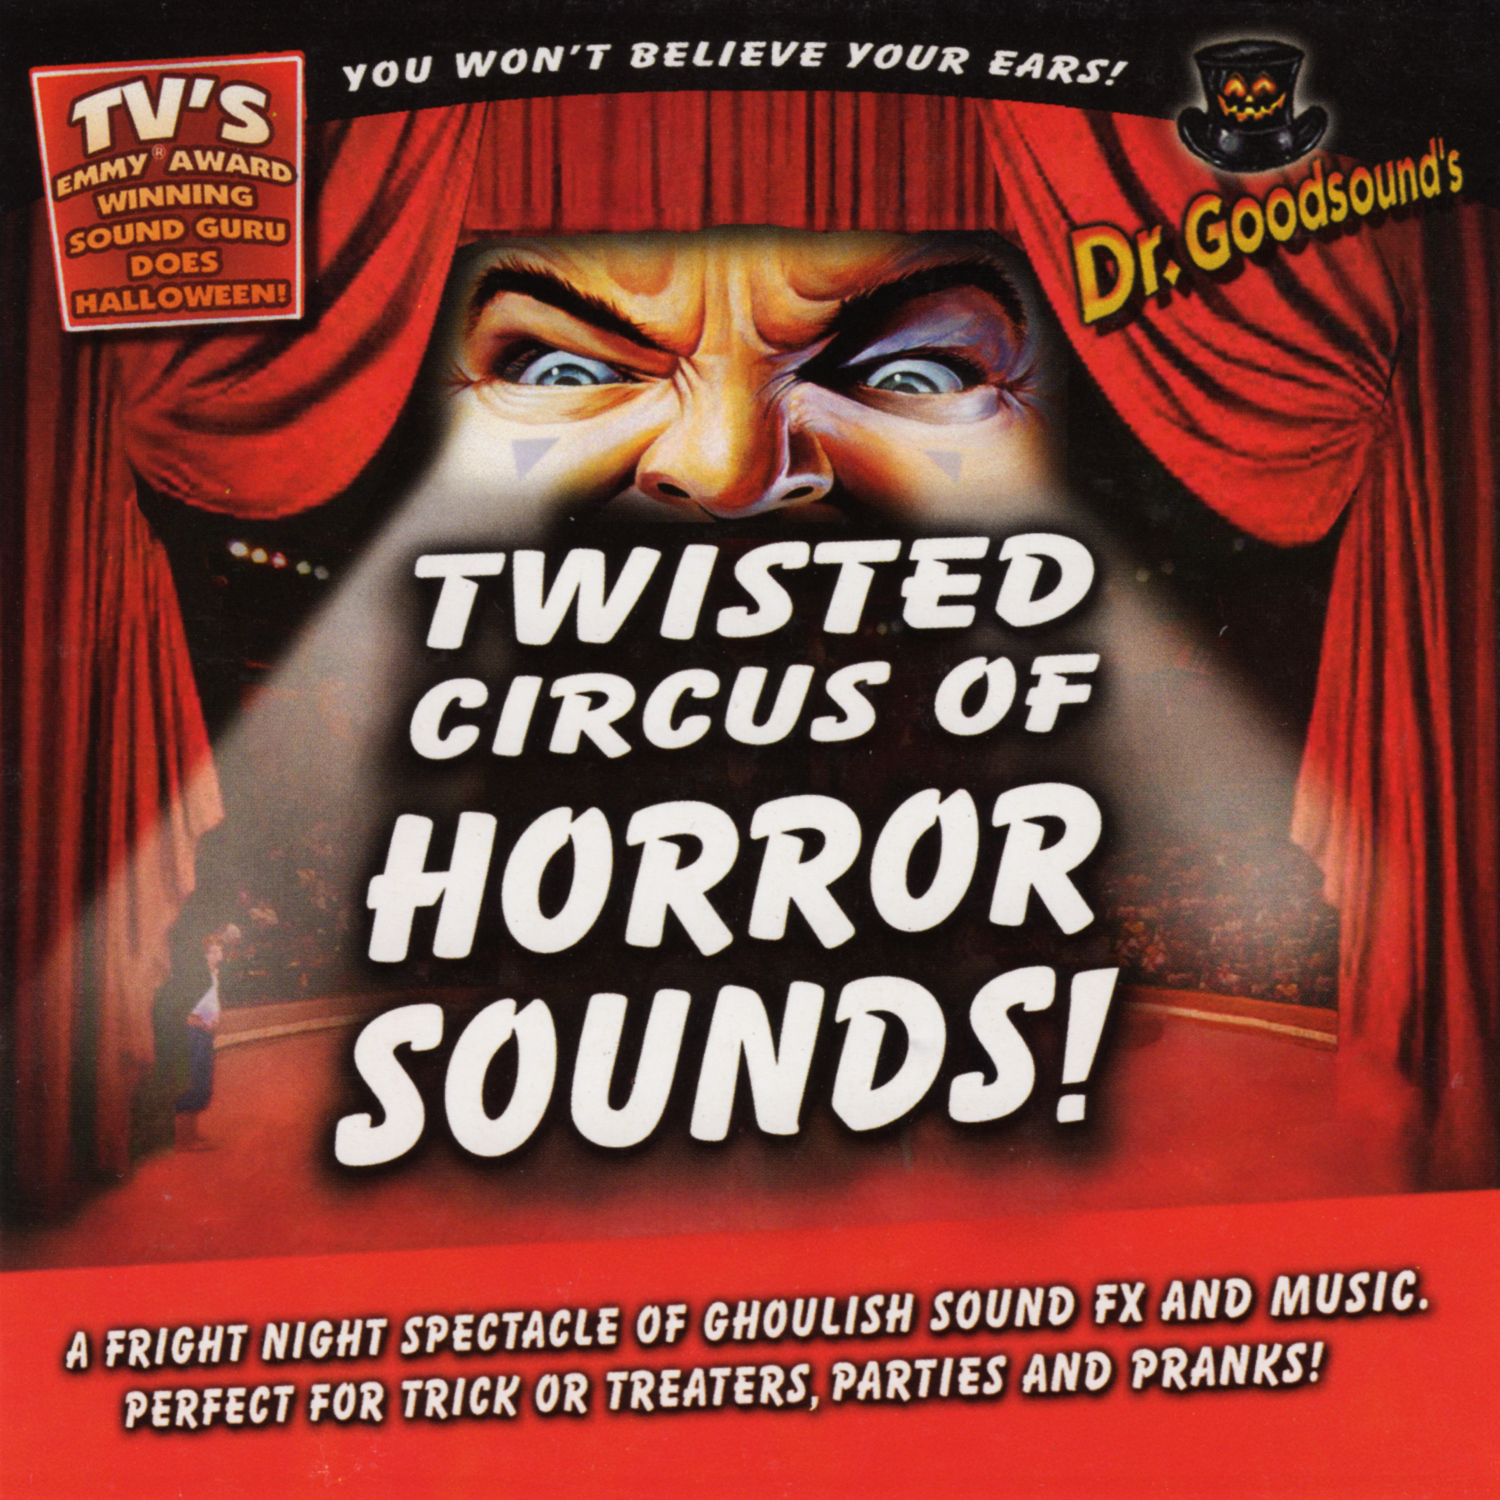 Scary Sounds of Halloween Blog: Dr. Goodsound's Halloween: Twisted ...